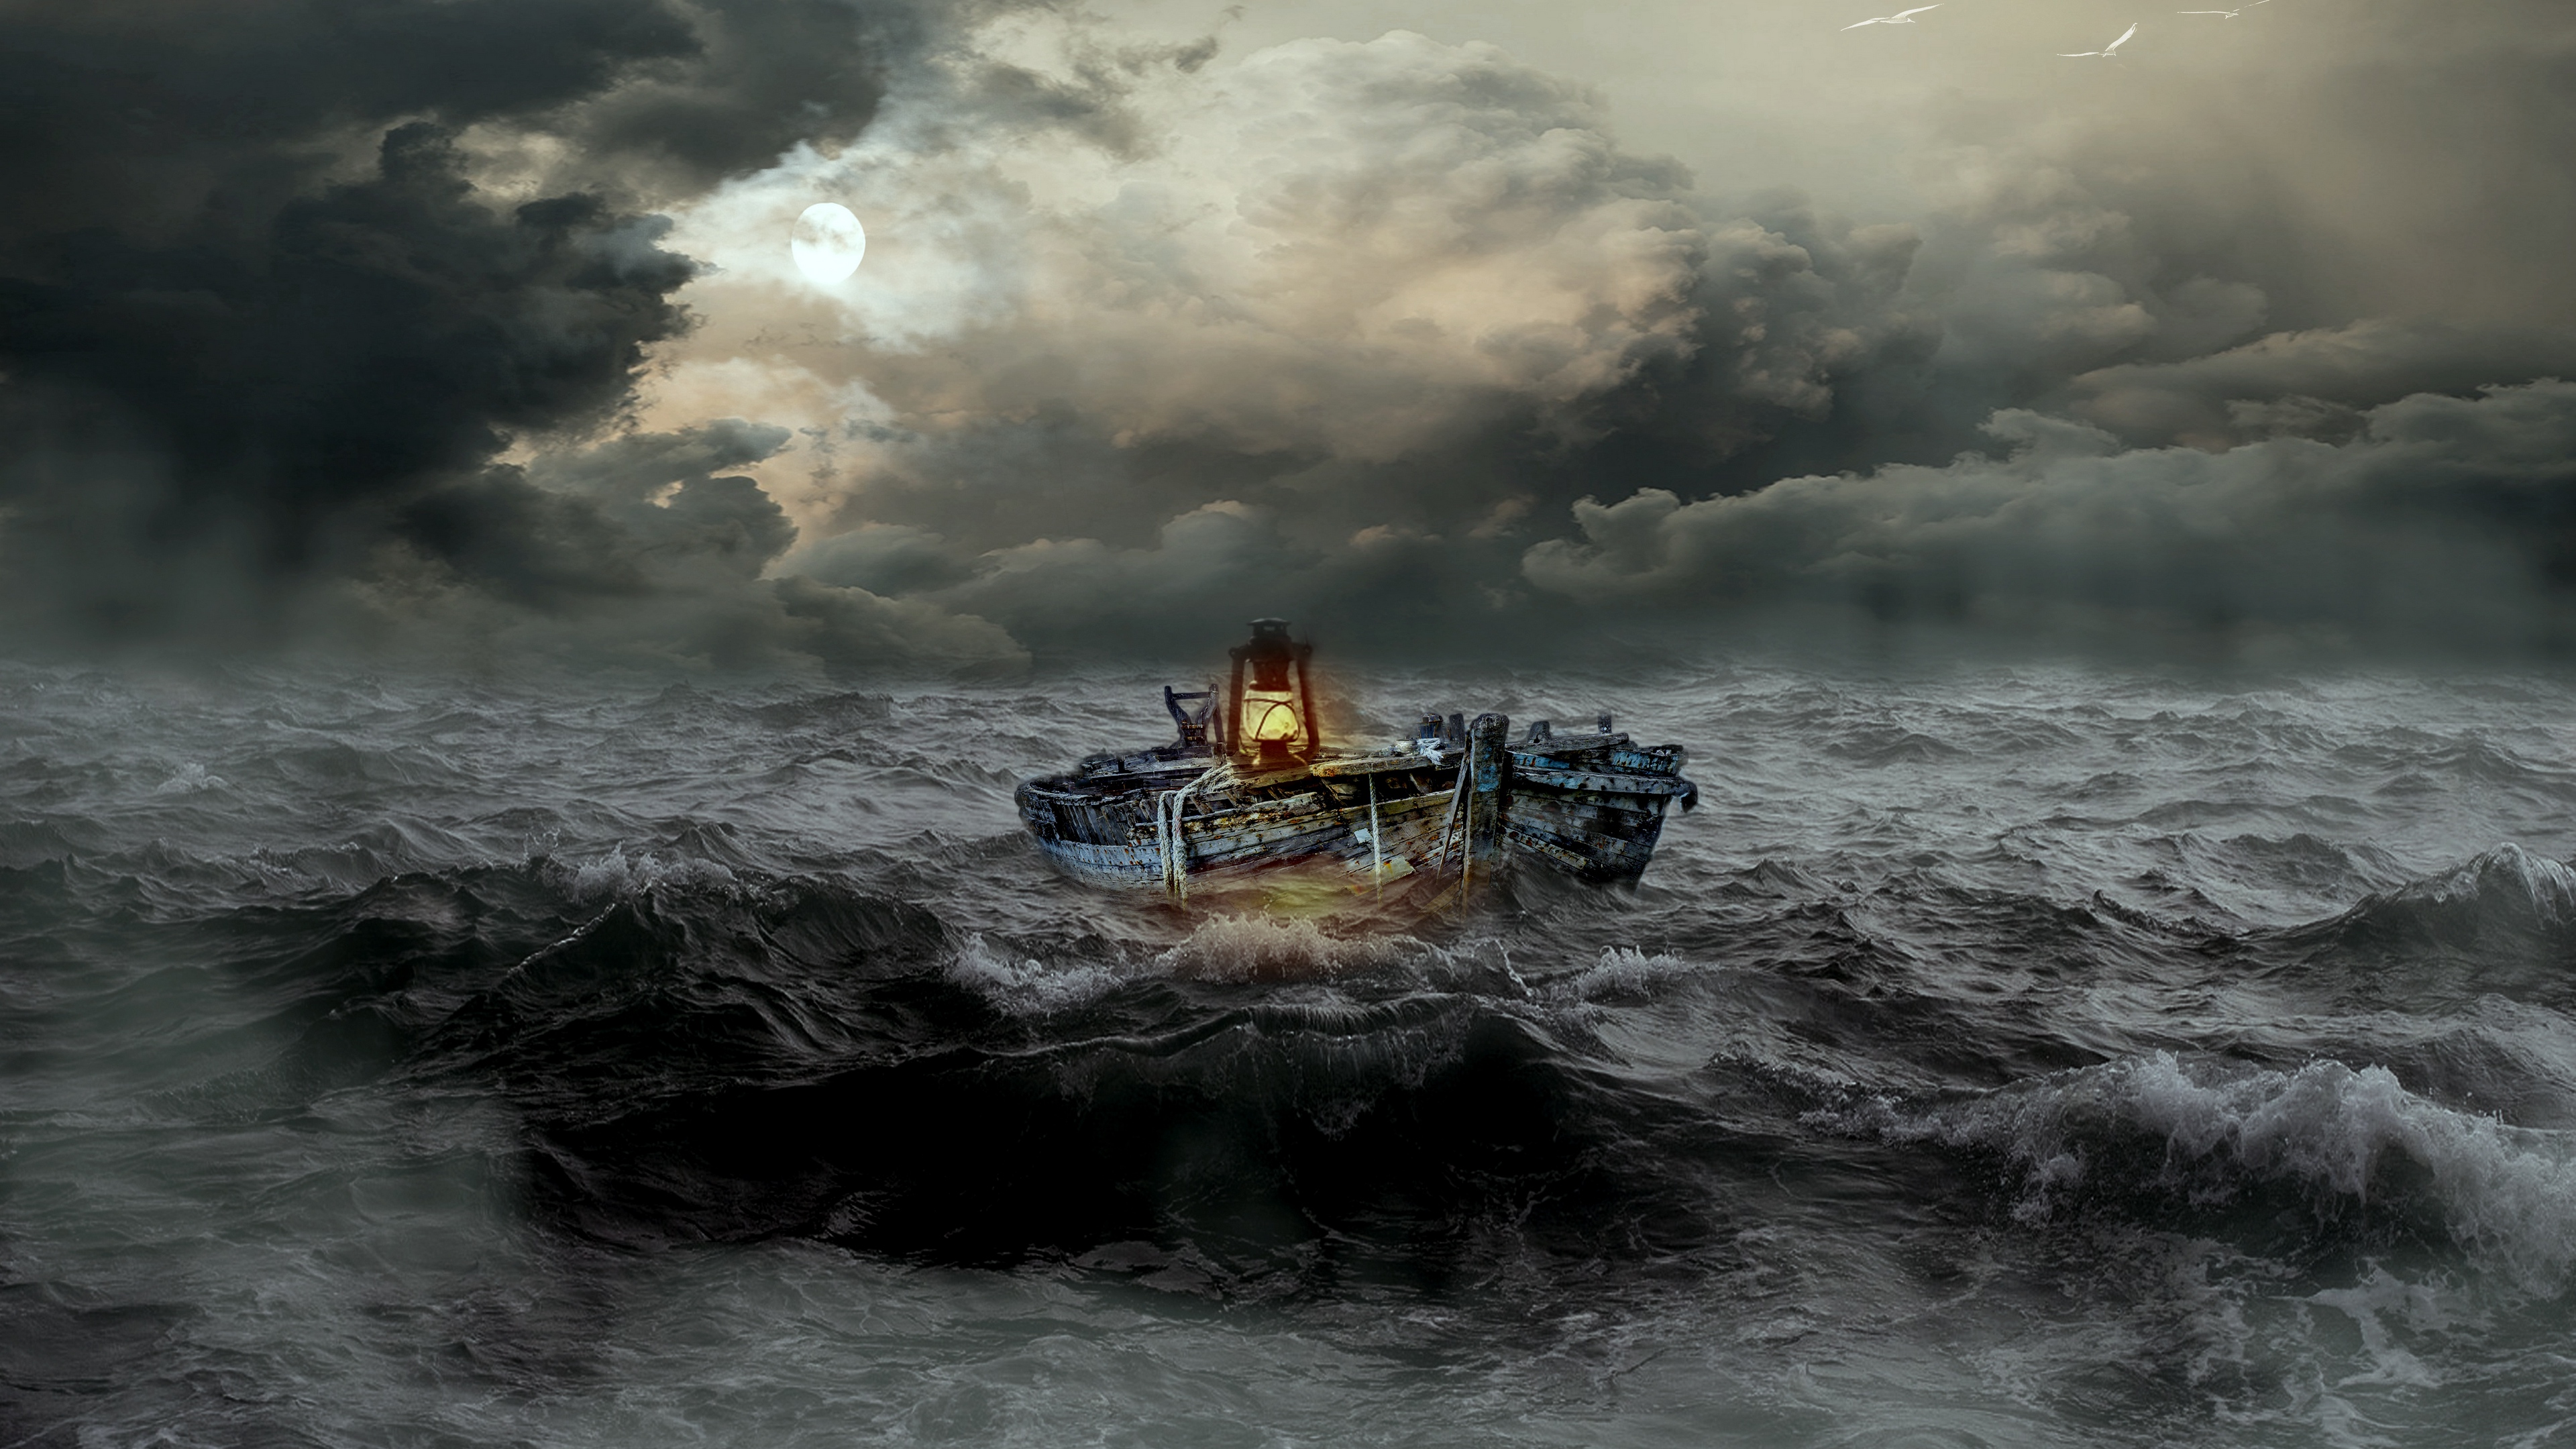 Wallpaper Boat Storm Sea Waves Overcast 3840x2160 Wallpaper Teahub Io